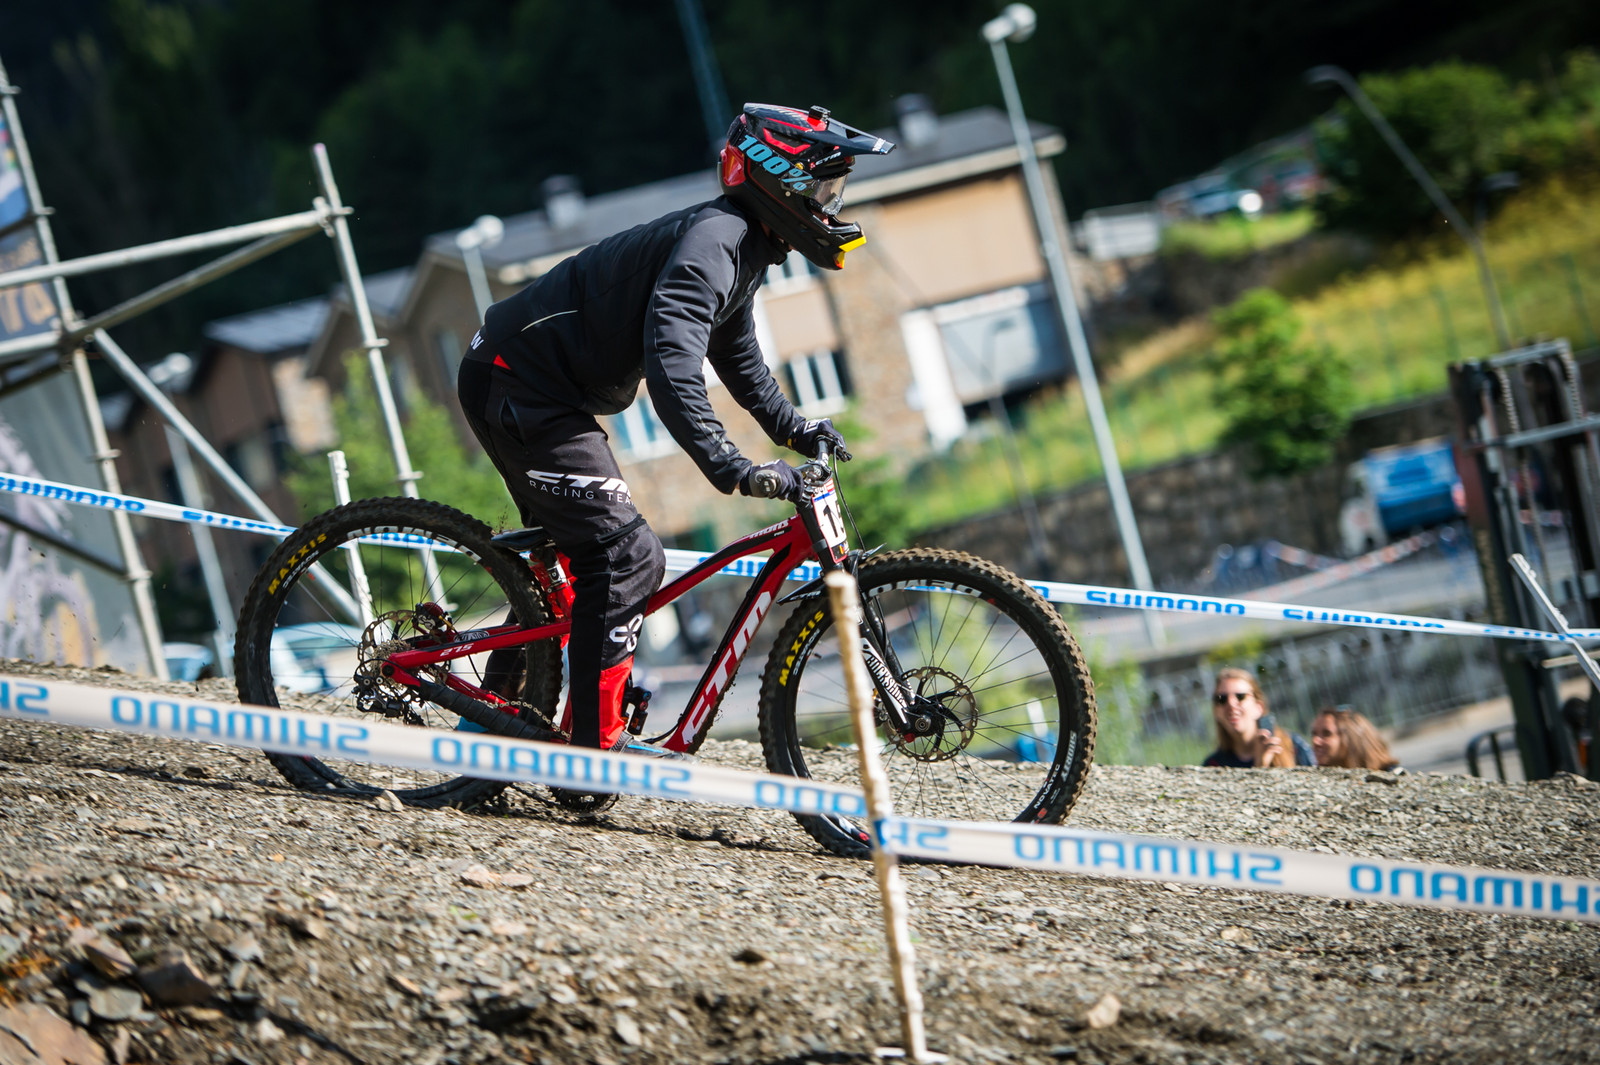 CTM G-Out - G-Out Project: Andorra World Cup 2017 - Mountain Biking Pictures - Vital MTB